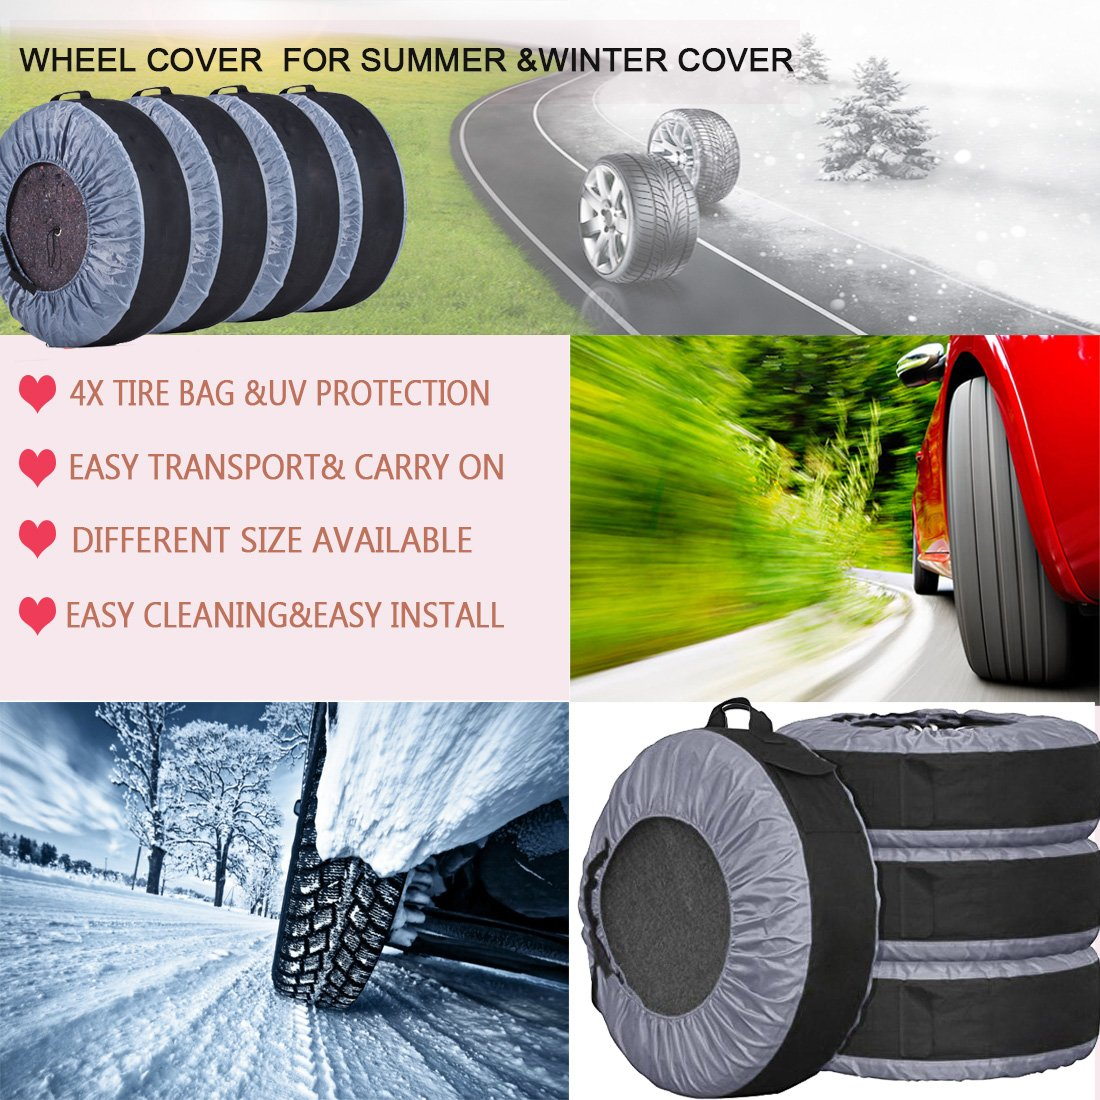 FLR Tire Tote Adjustable Waterproof Grey 30in Tire Covers Bags Seasonal Tire Storage Bag for Car Off Road Truck Tire Totes Set of 4 by FLR (Image #2)